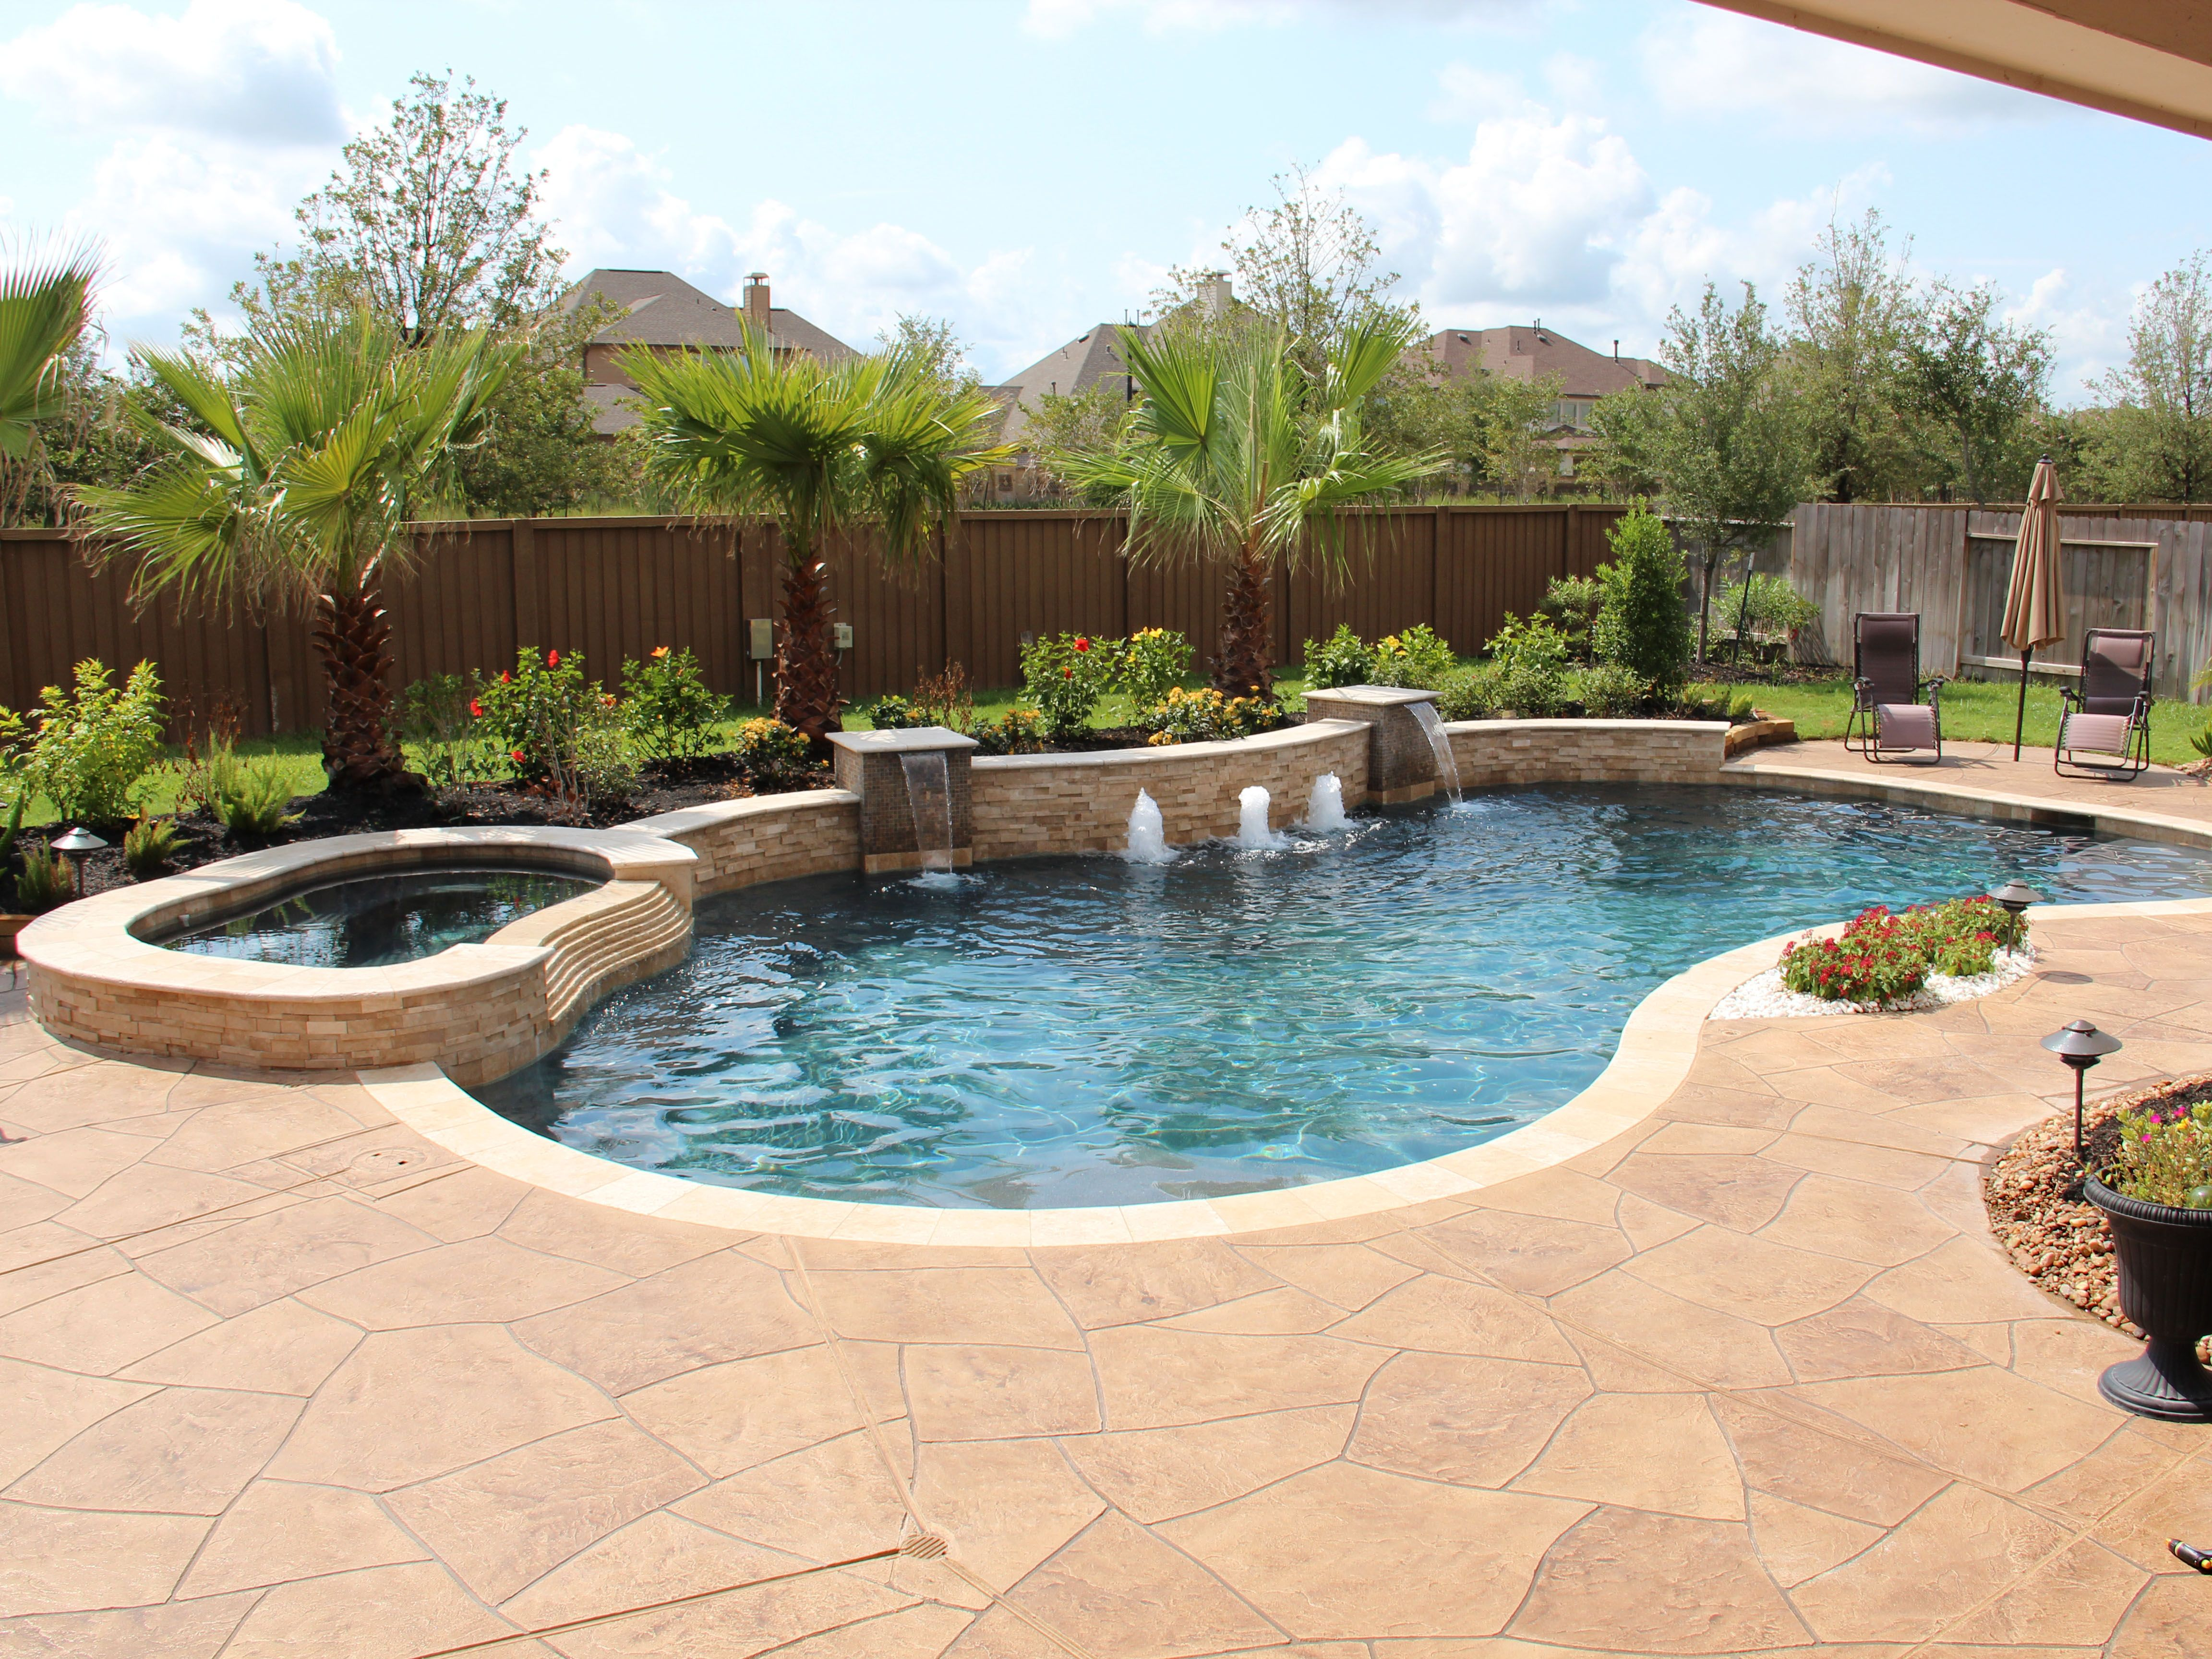 This is the same pool in image 114 Here is a full view of the pool and patio surface From this